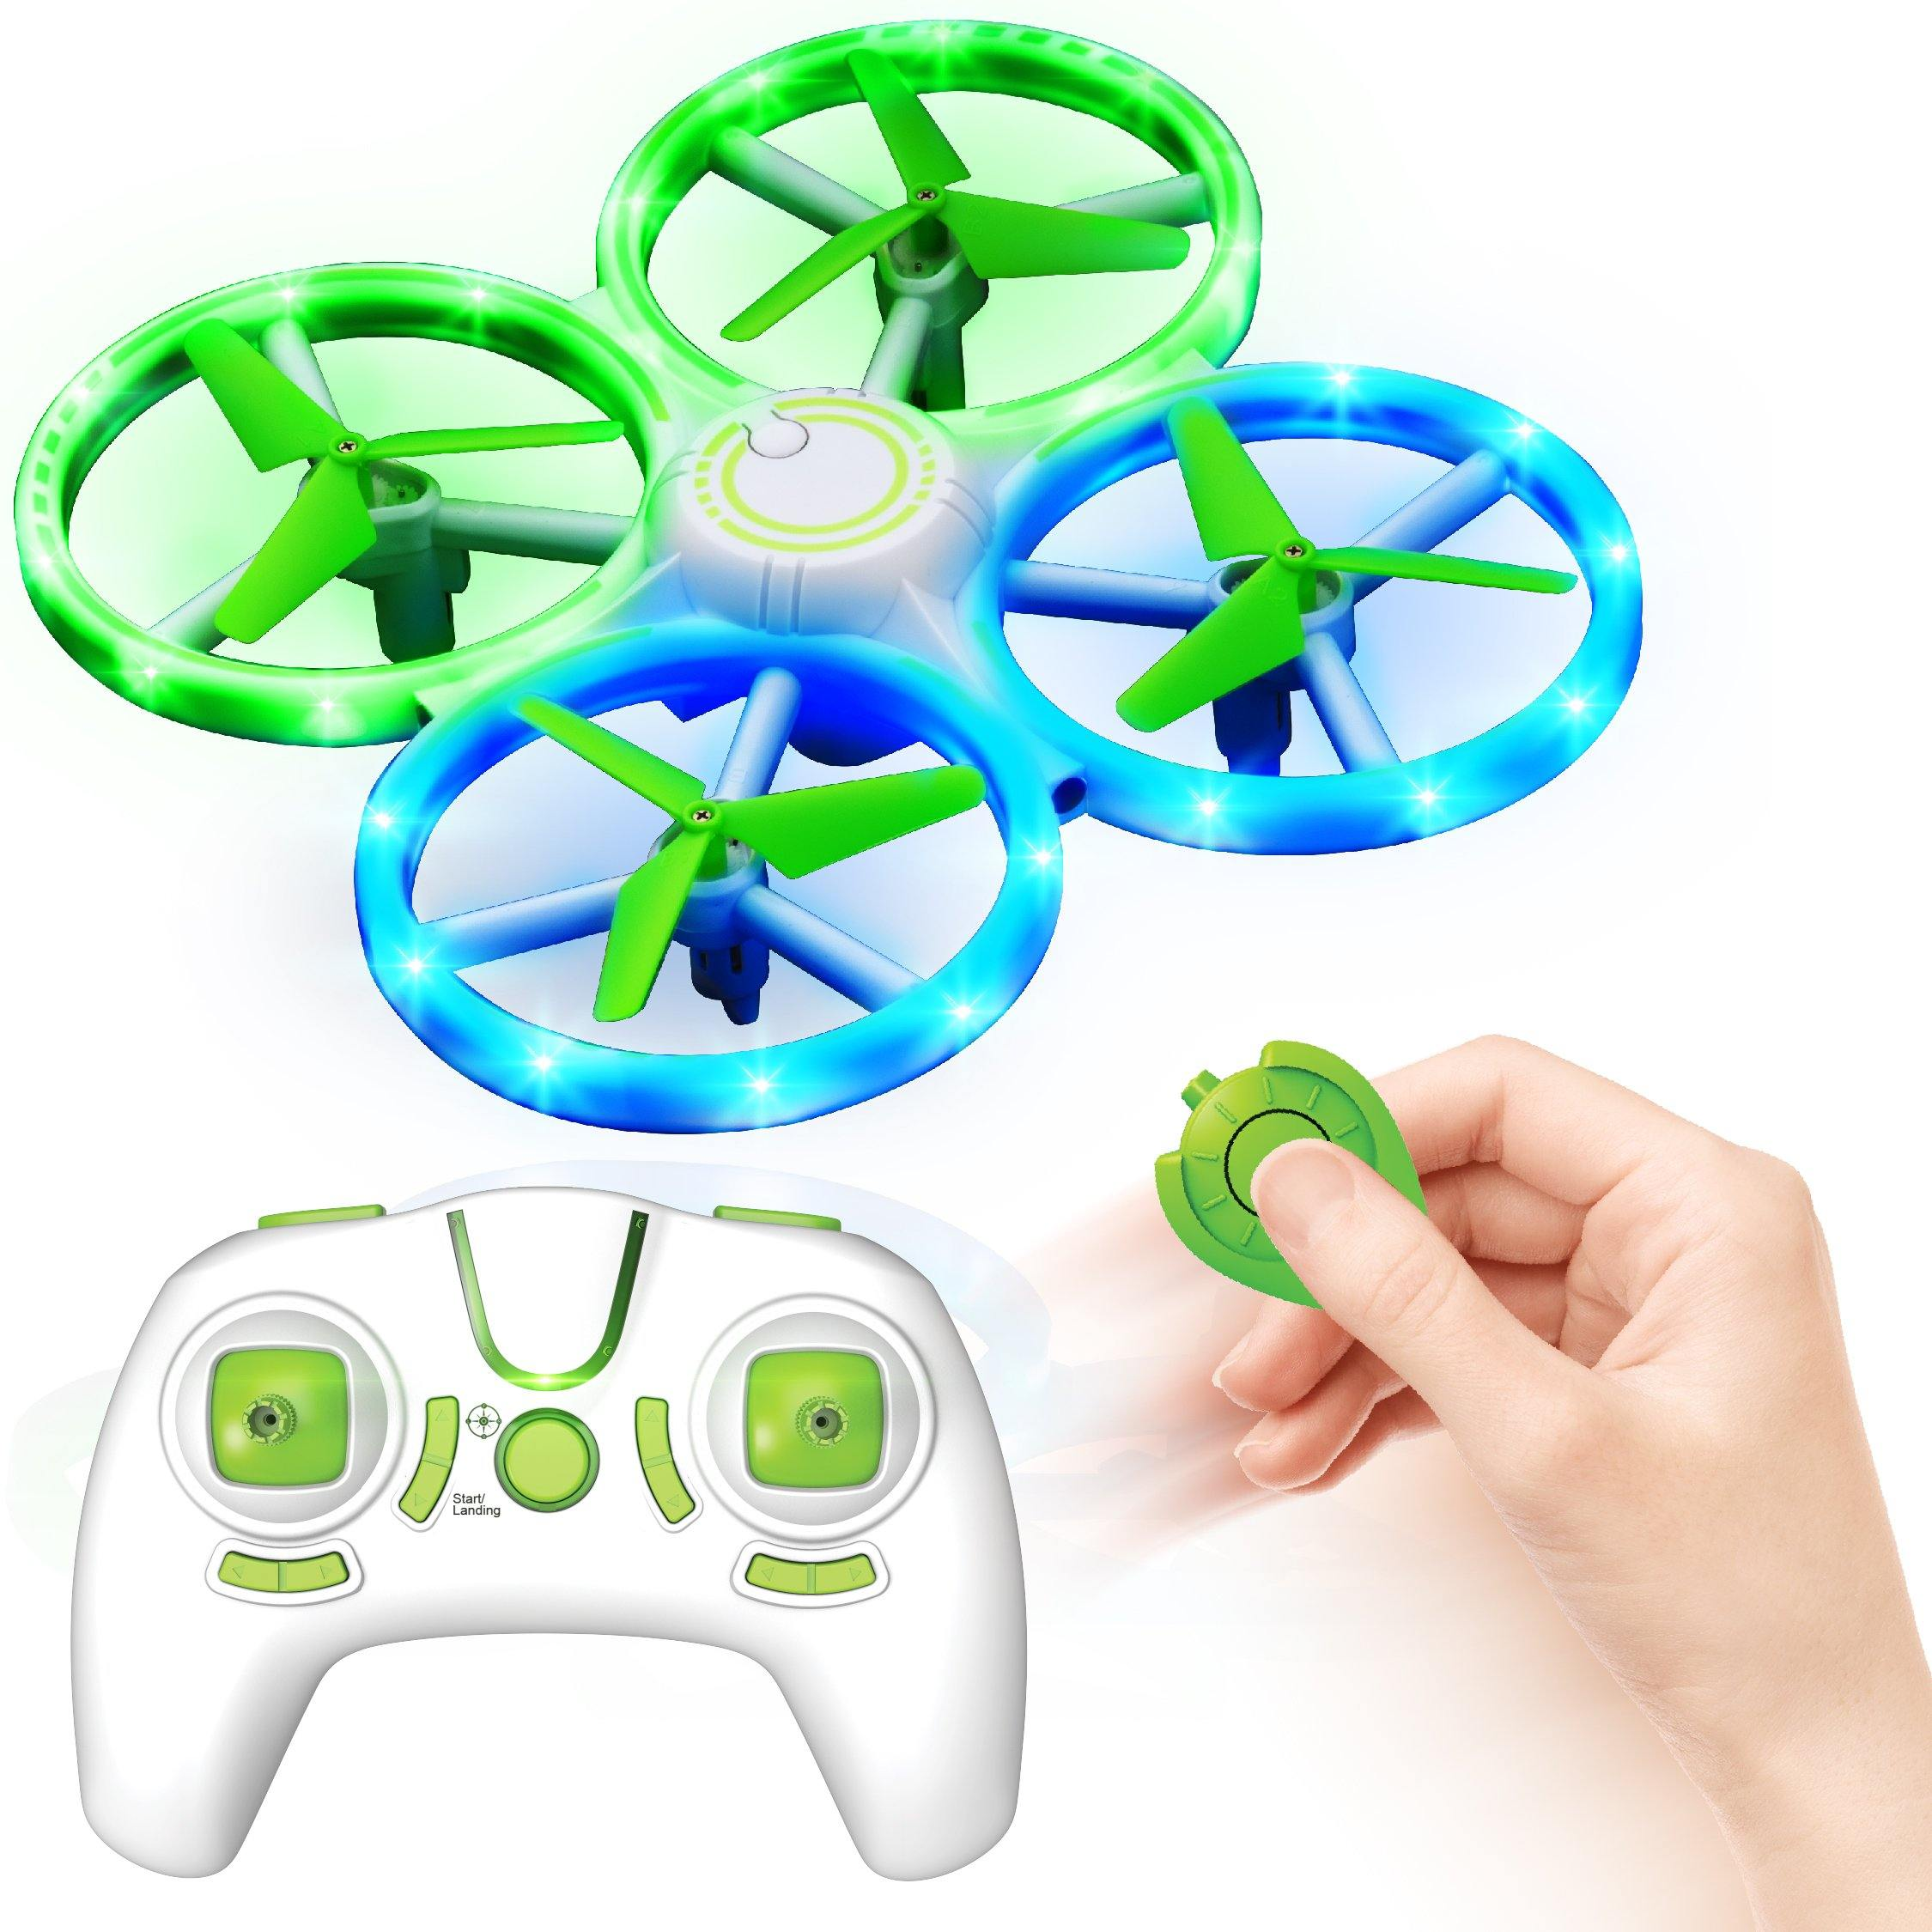 UFO1 Mini LED Drone with Hand Motion Sensors (Green)